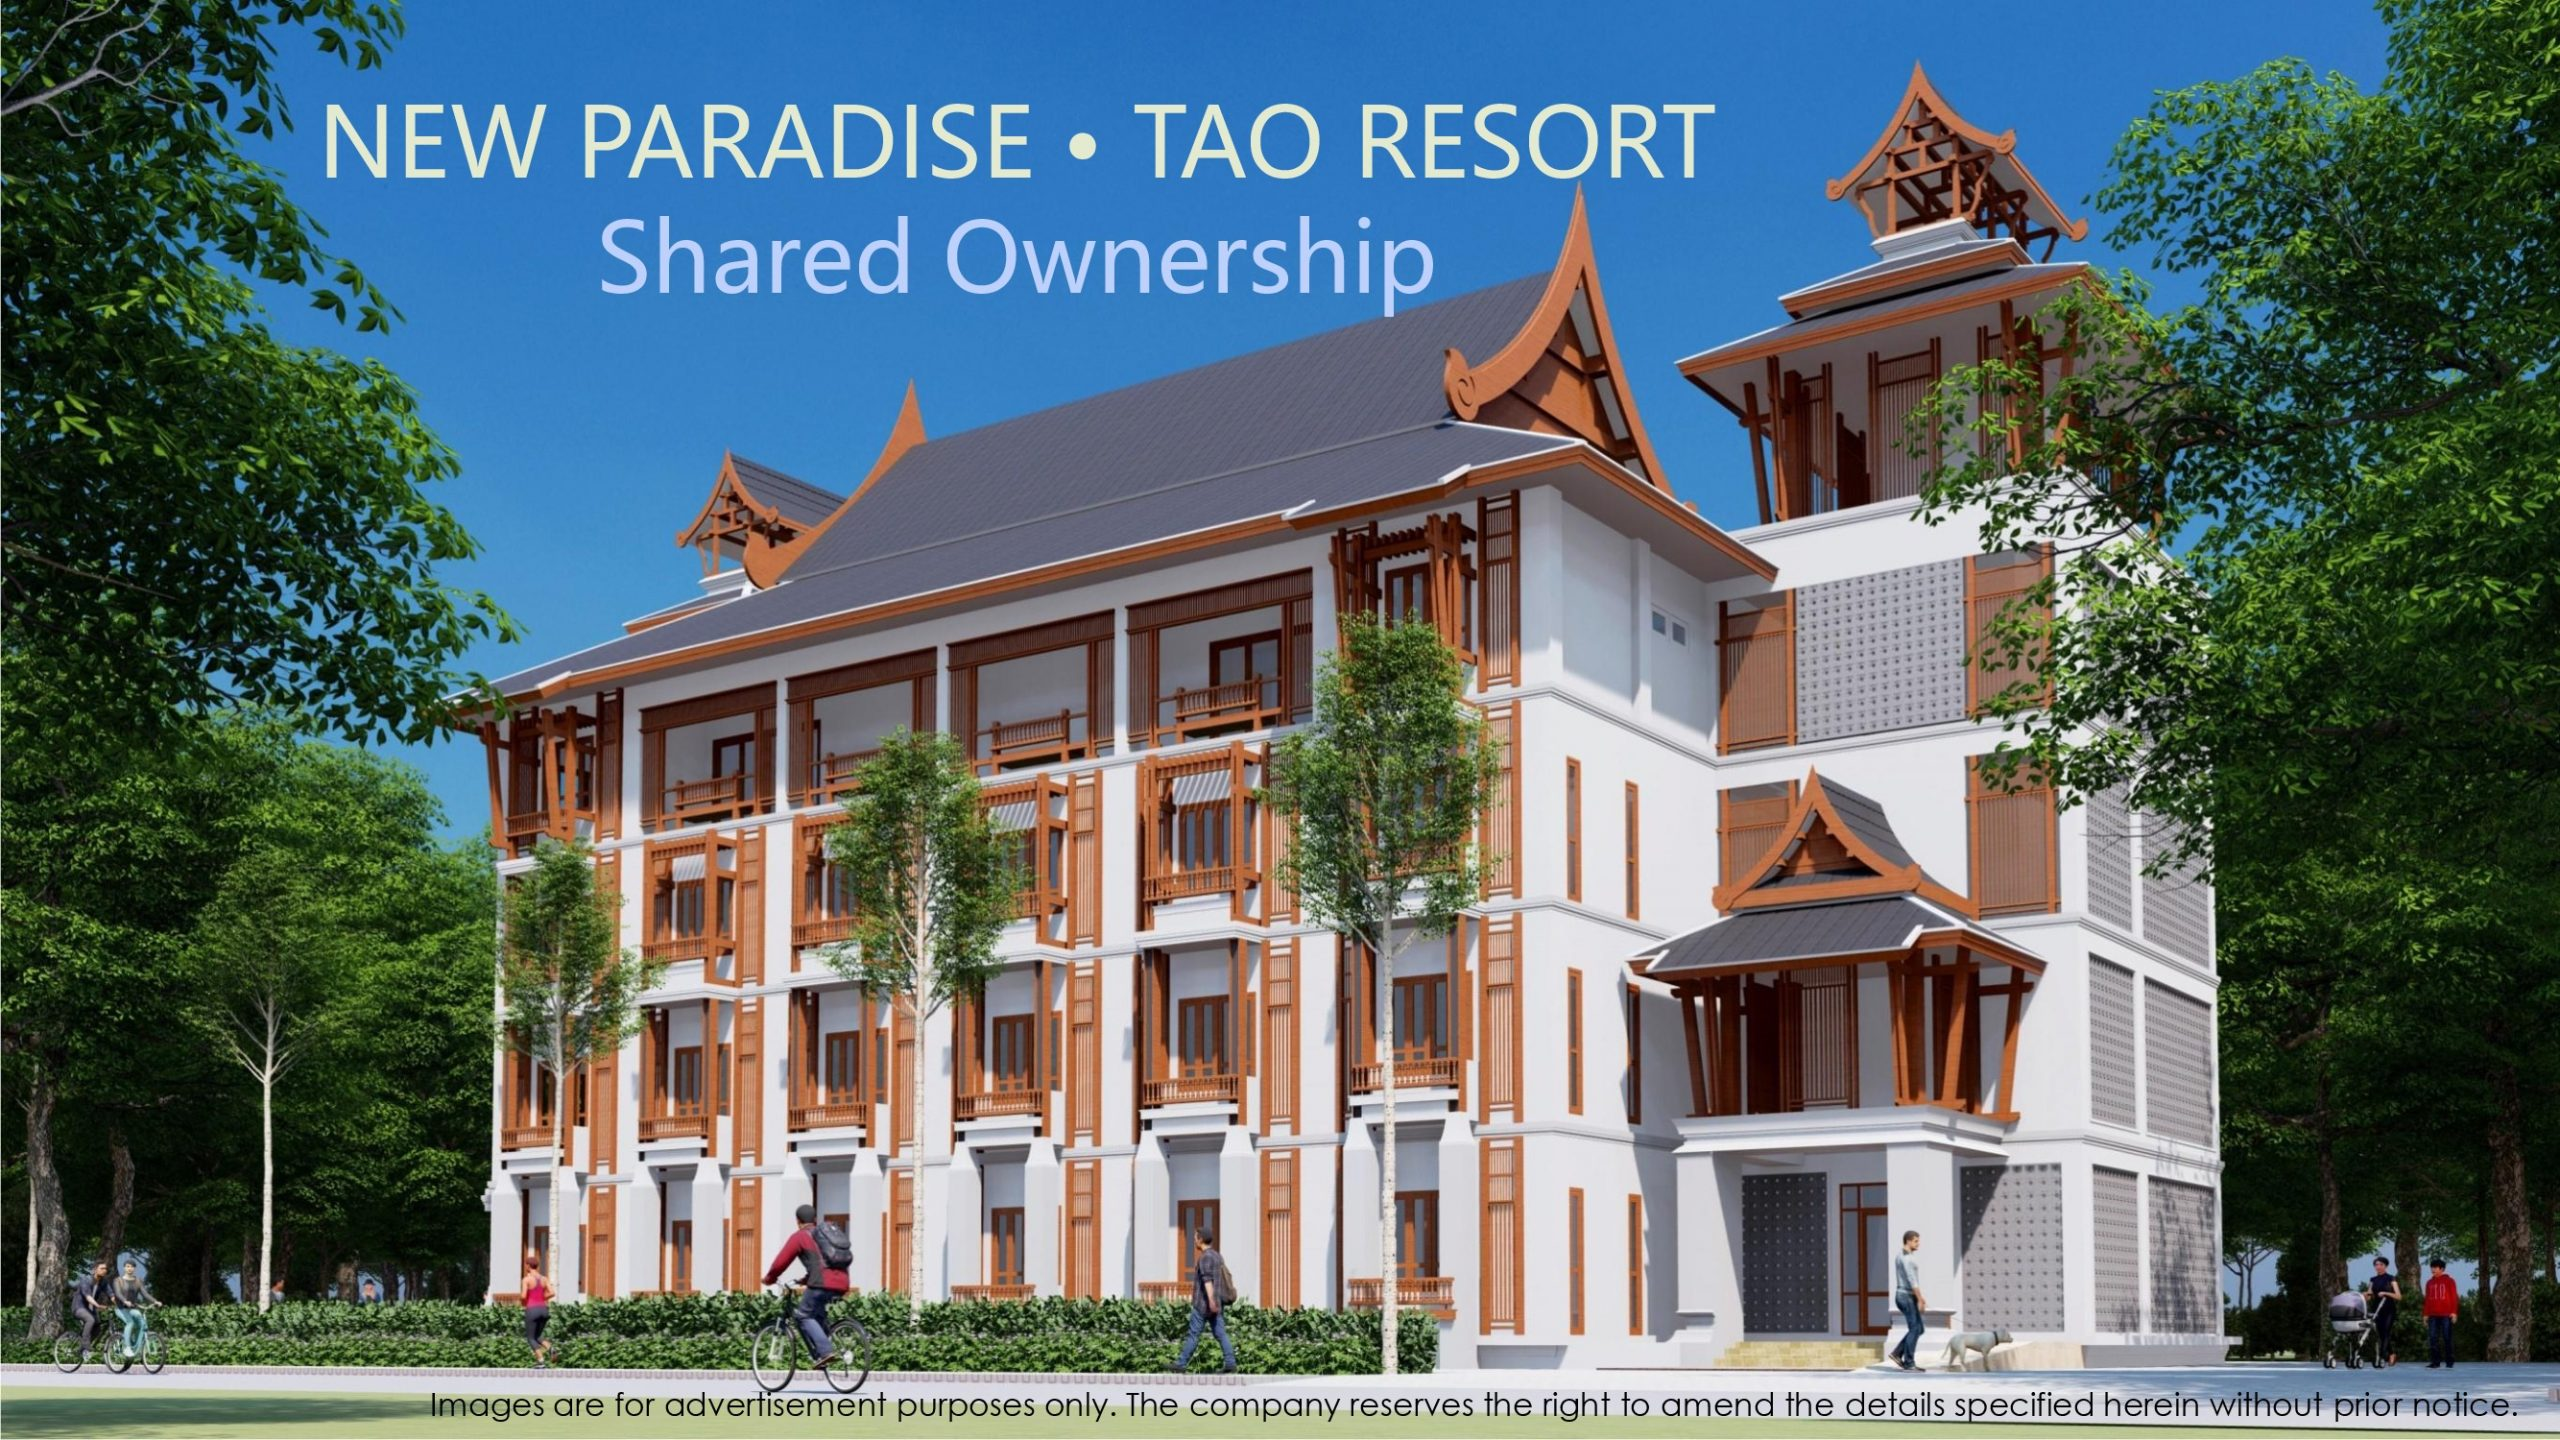 Tao Resort and Darkroom Technology